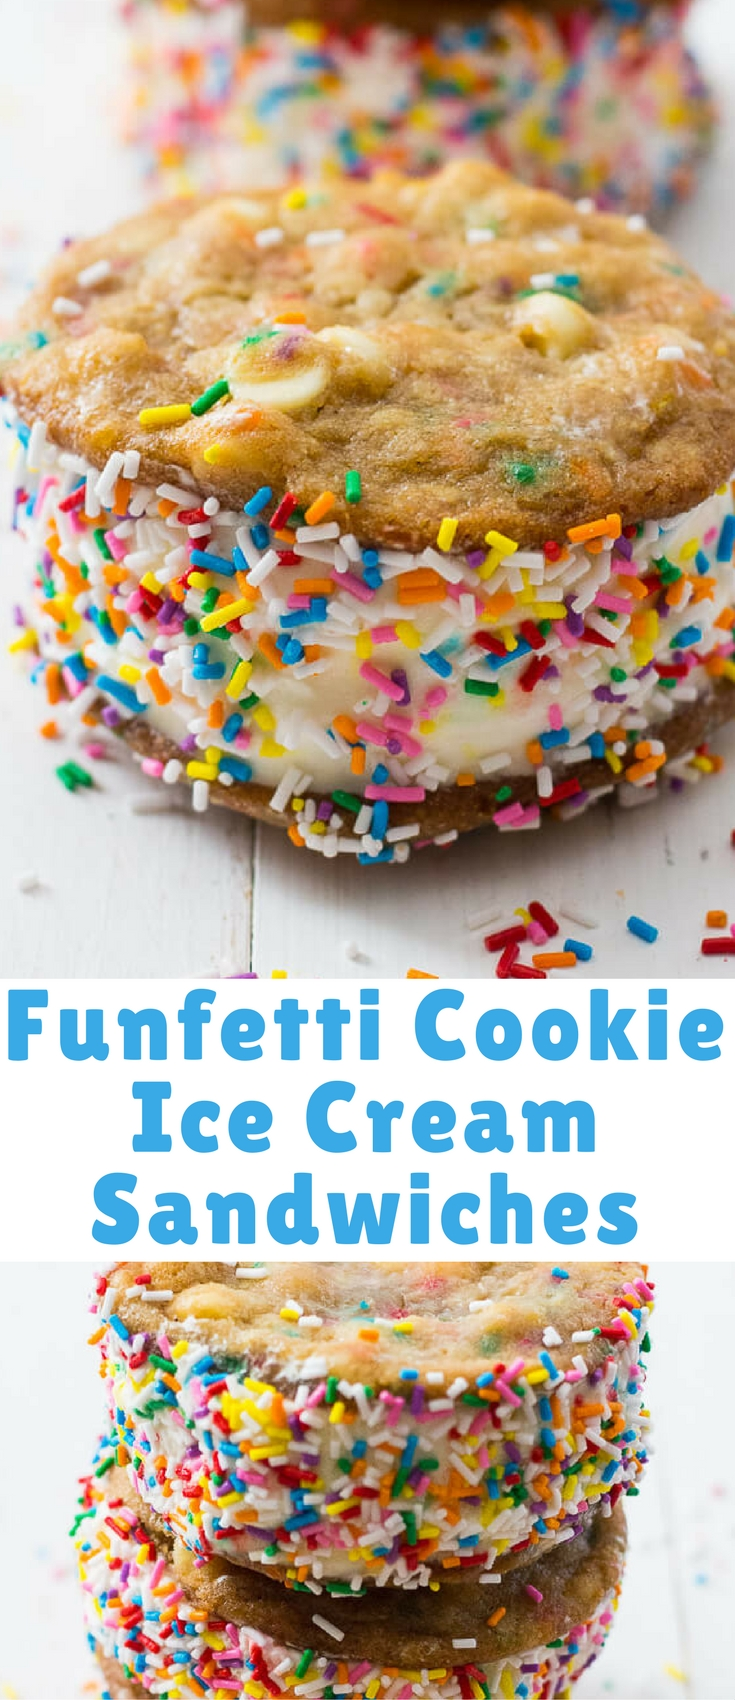 These White Chocolate Chip Funfetti Ice Cream Sandwiches are sure to become your new favourite summer dessert – just don't forget the extra sprinkles!